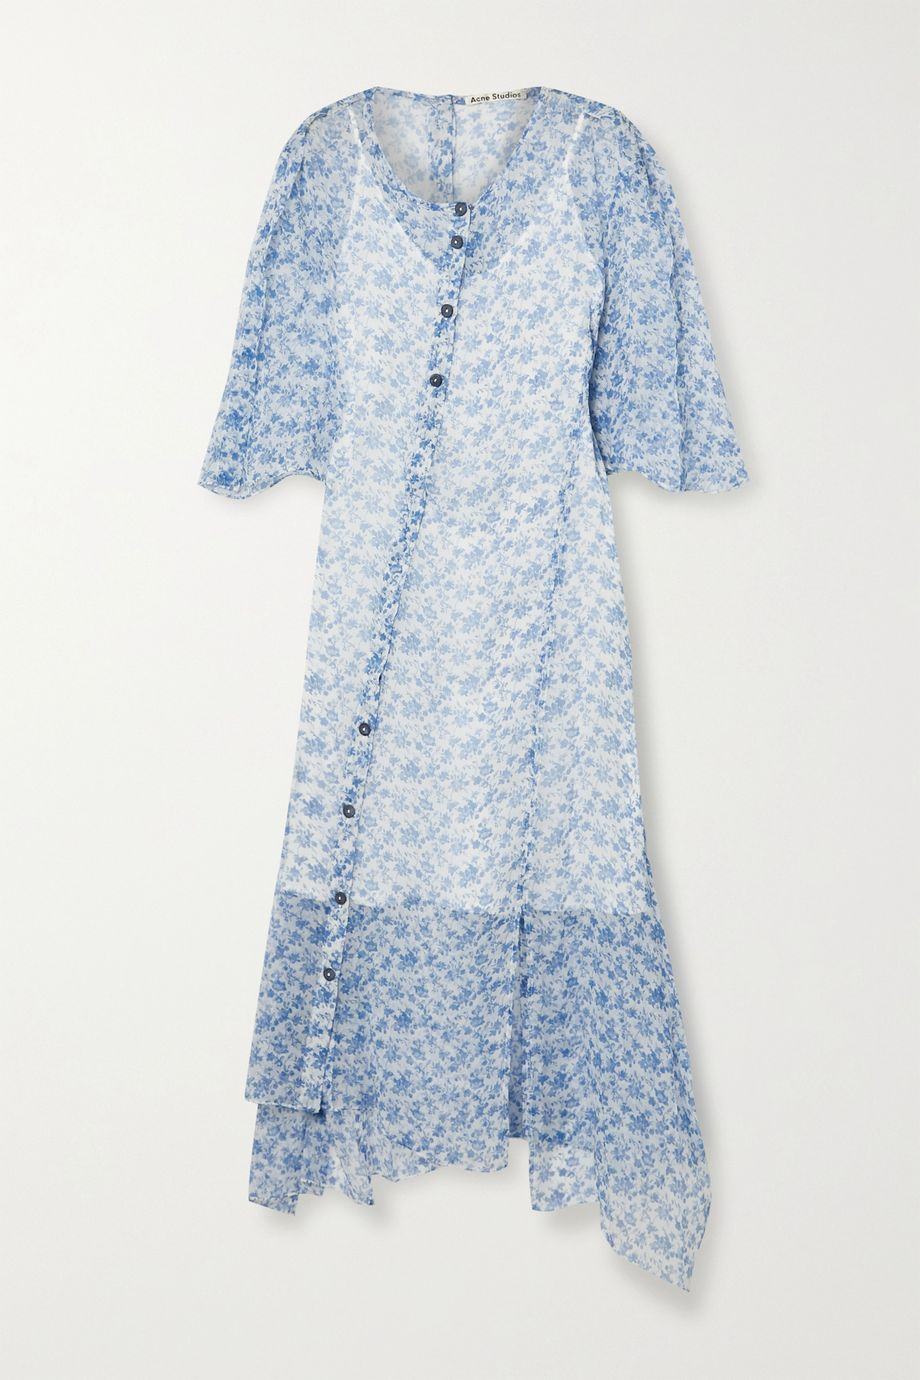 Acne Studios Floral-print silk-crepon midi dress